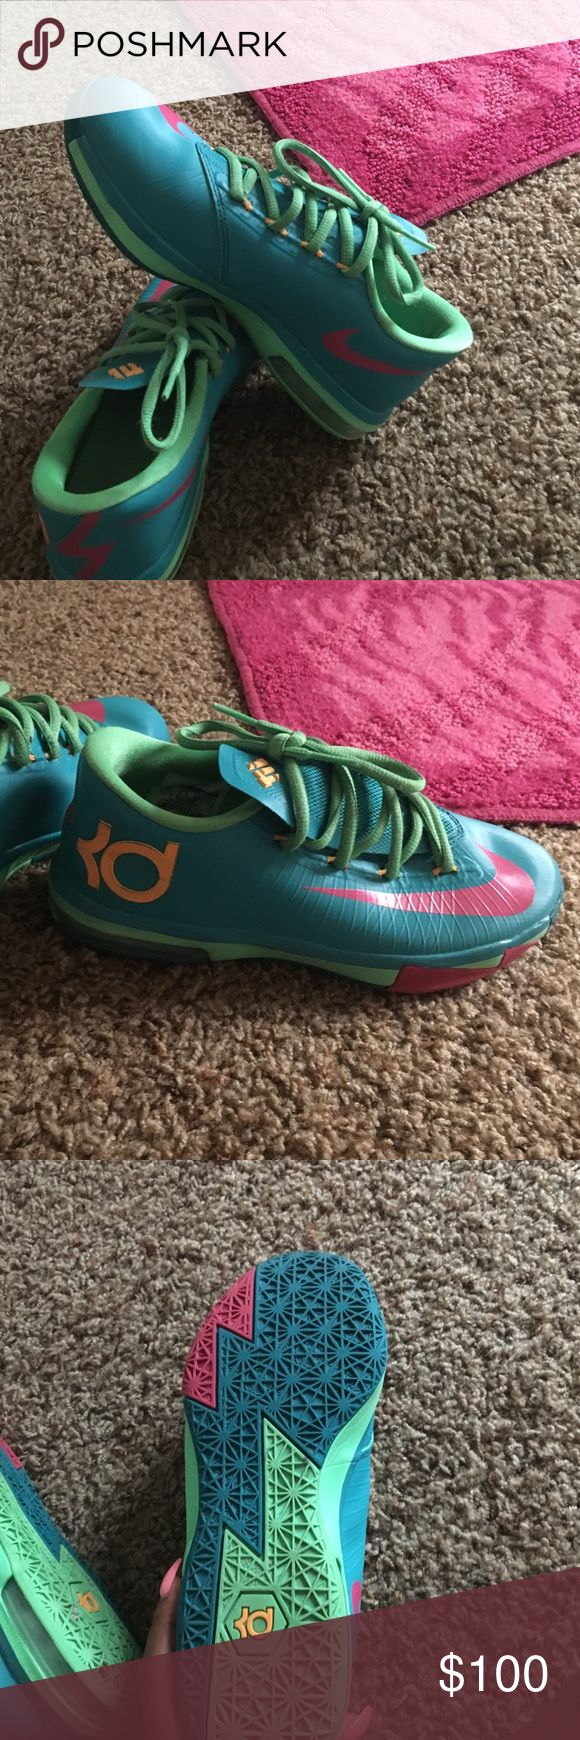 Online Cheap Nike KD 6 Blue Varisty Red White 599424 102